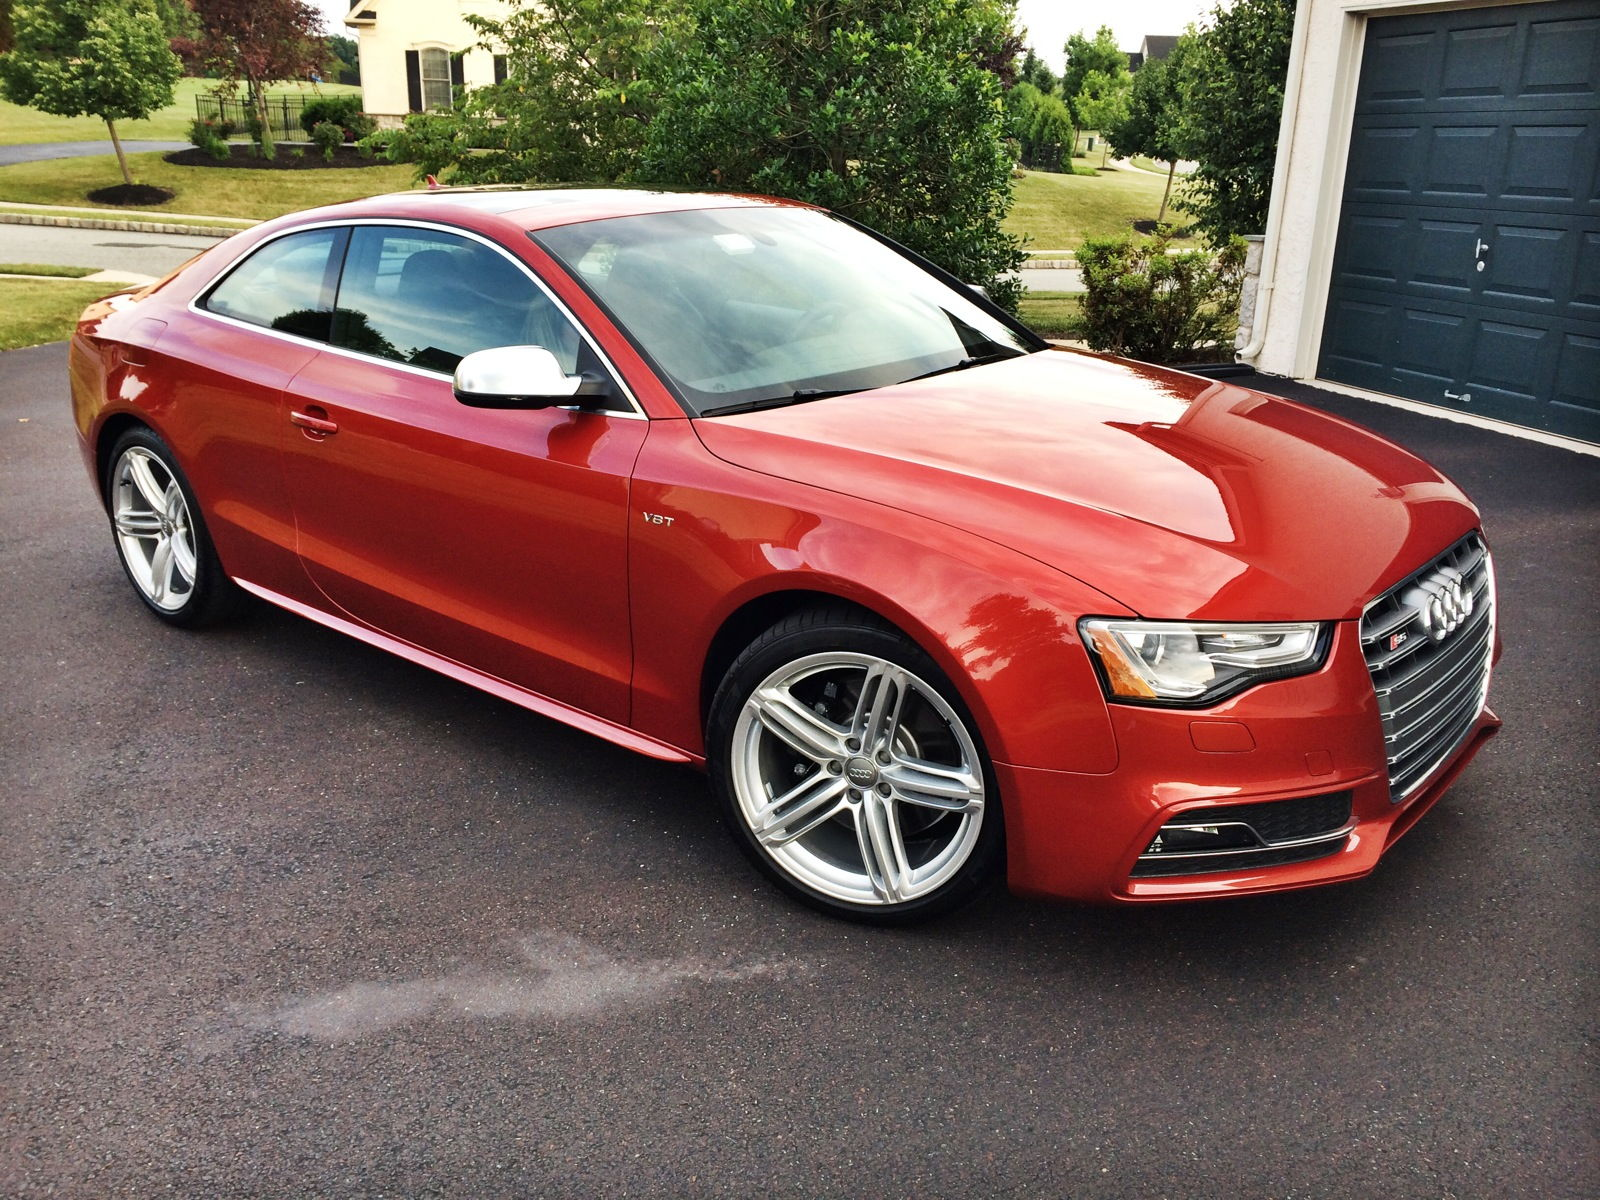 New Volcano Red S5 Audiworld Forums